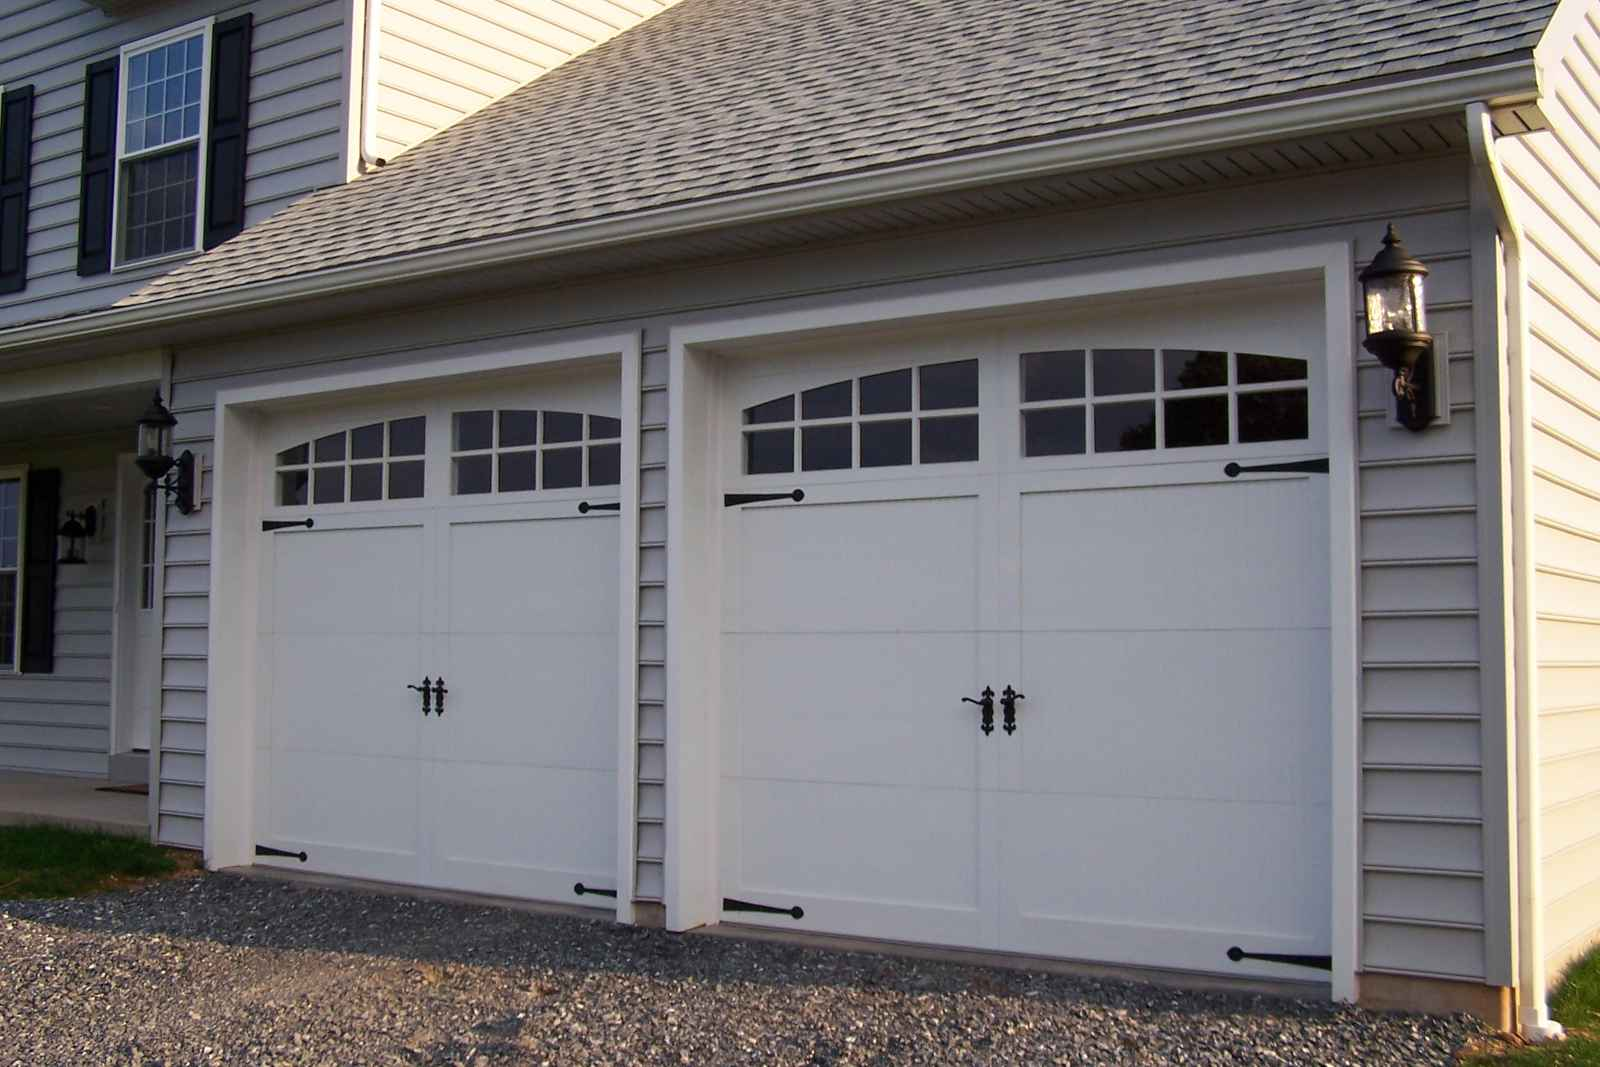 1067 #A98222  Garage Doors Hormann White Cheapest Garage Doors Sunrise Double Garage wallpaper Garage Doors Electric Opening 36051600